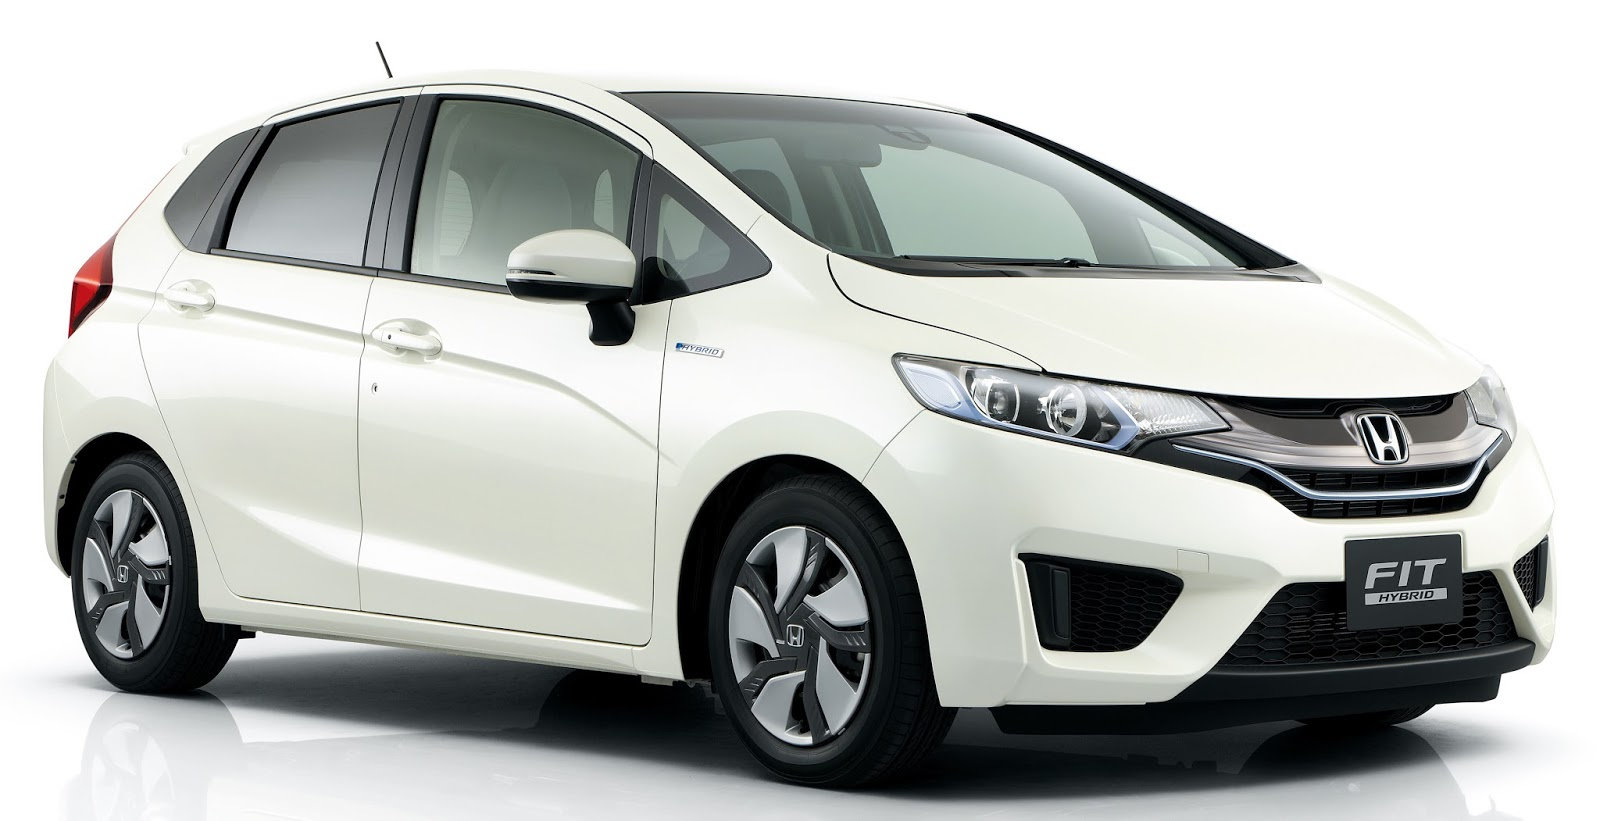 2016 Honda Jazz (Fit) Owner's Manual Pdf